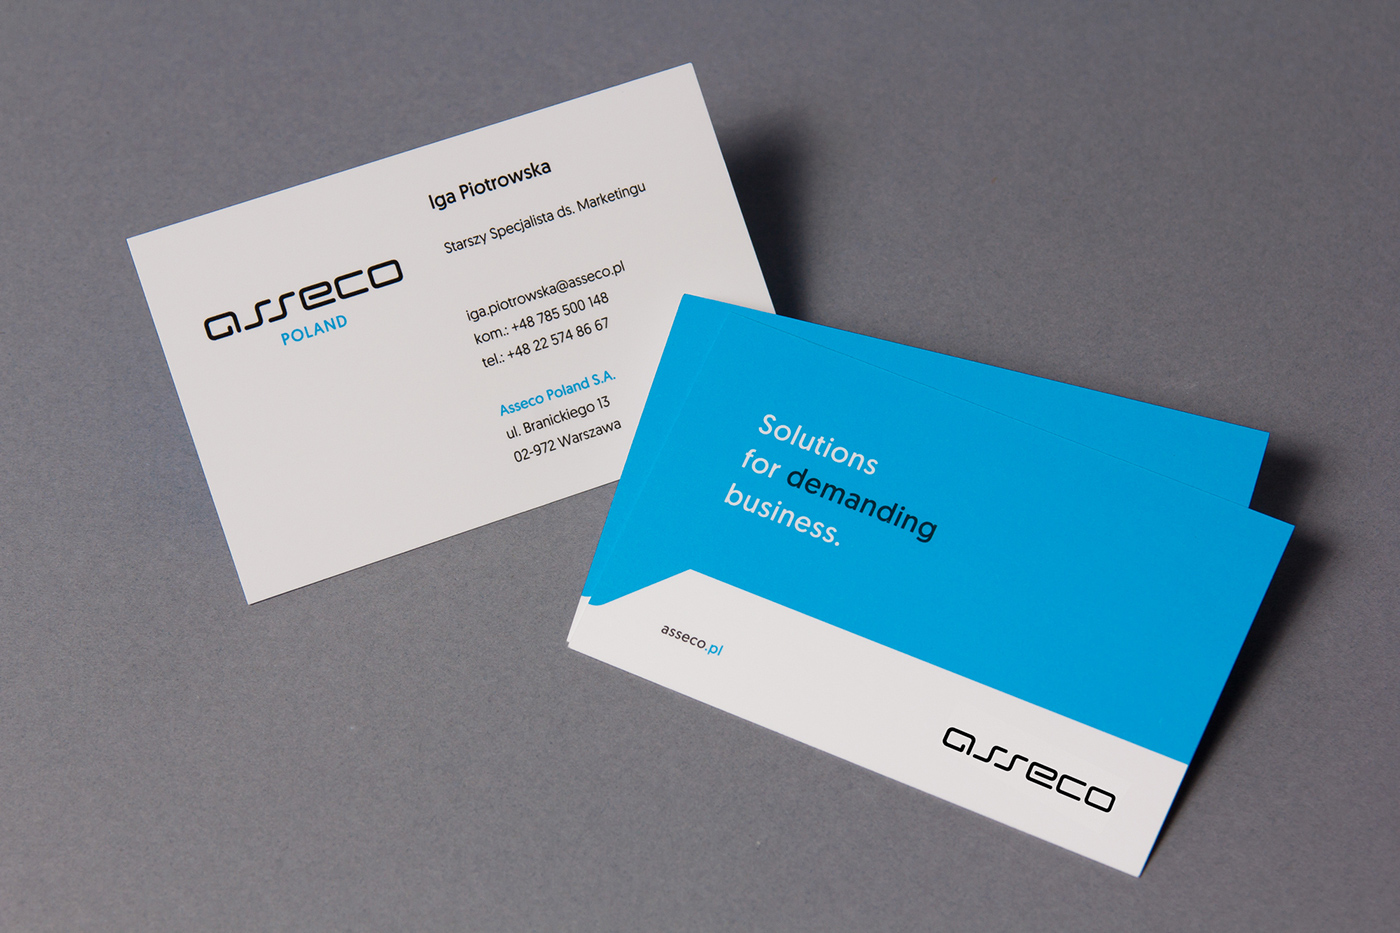 Asseco on Behance